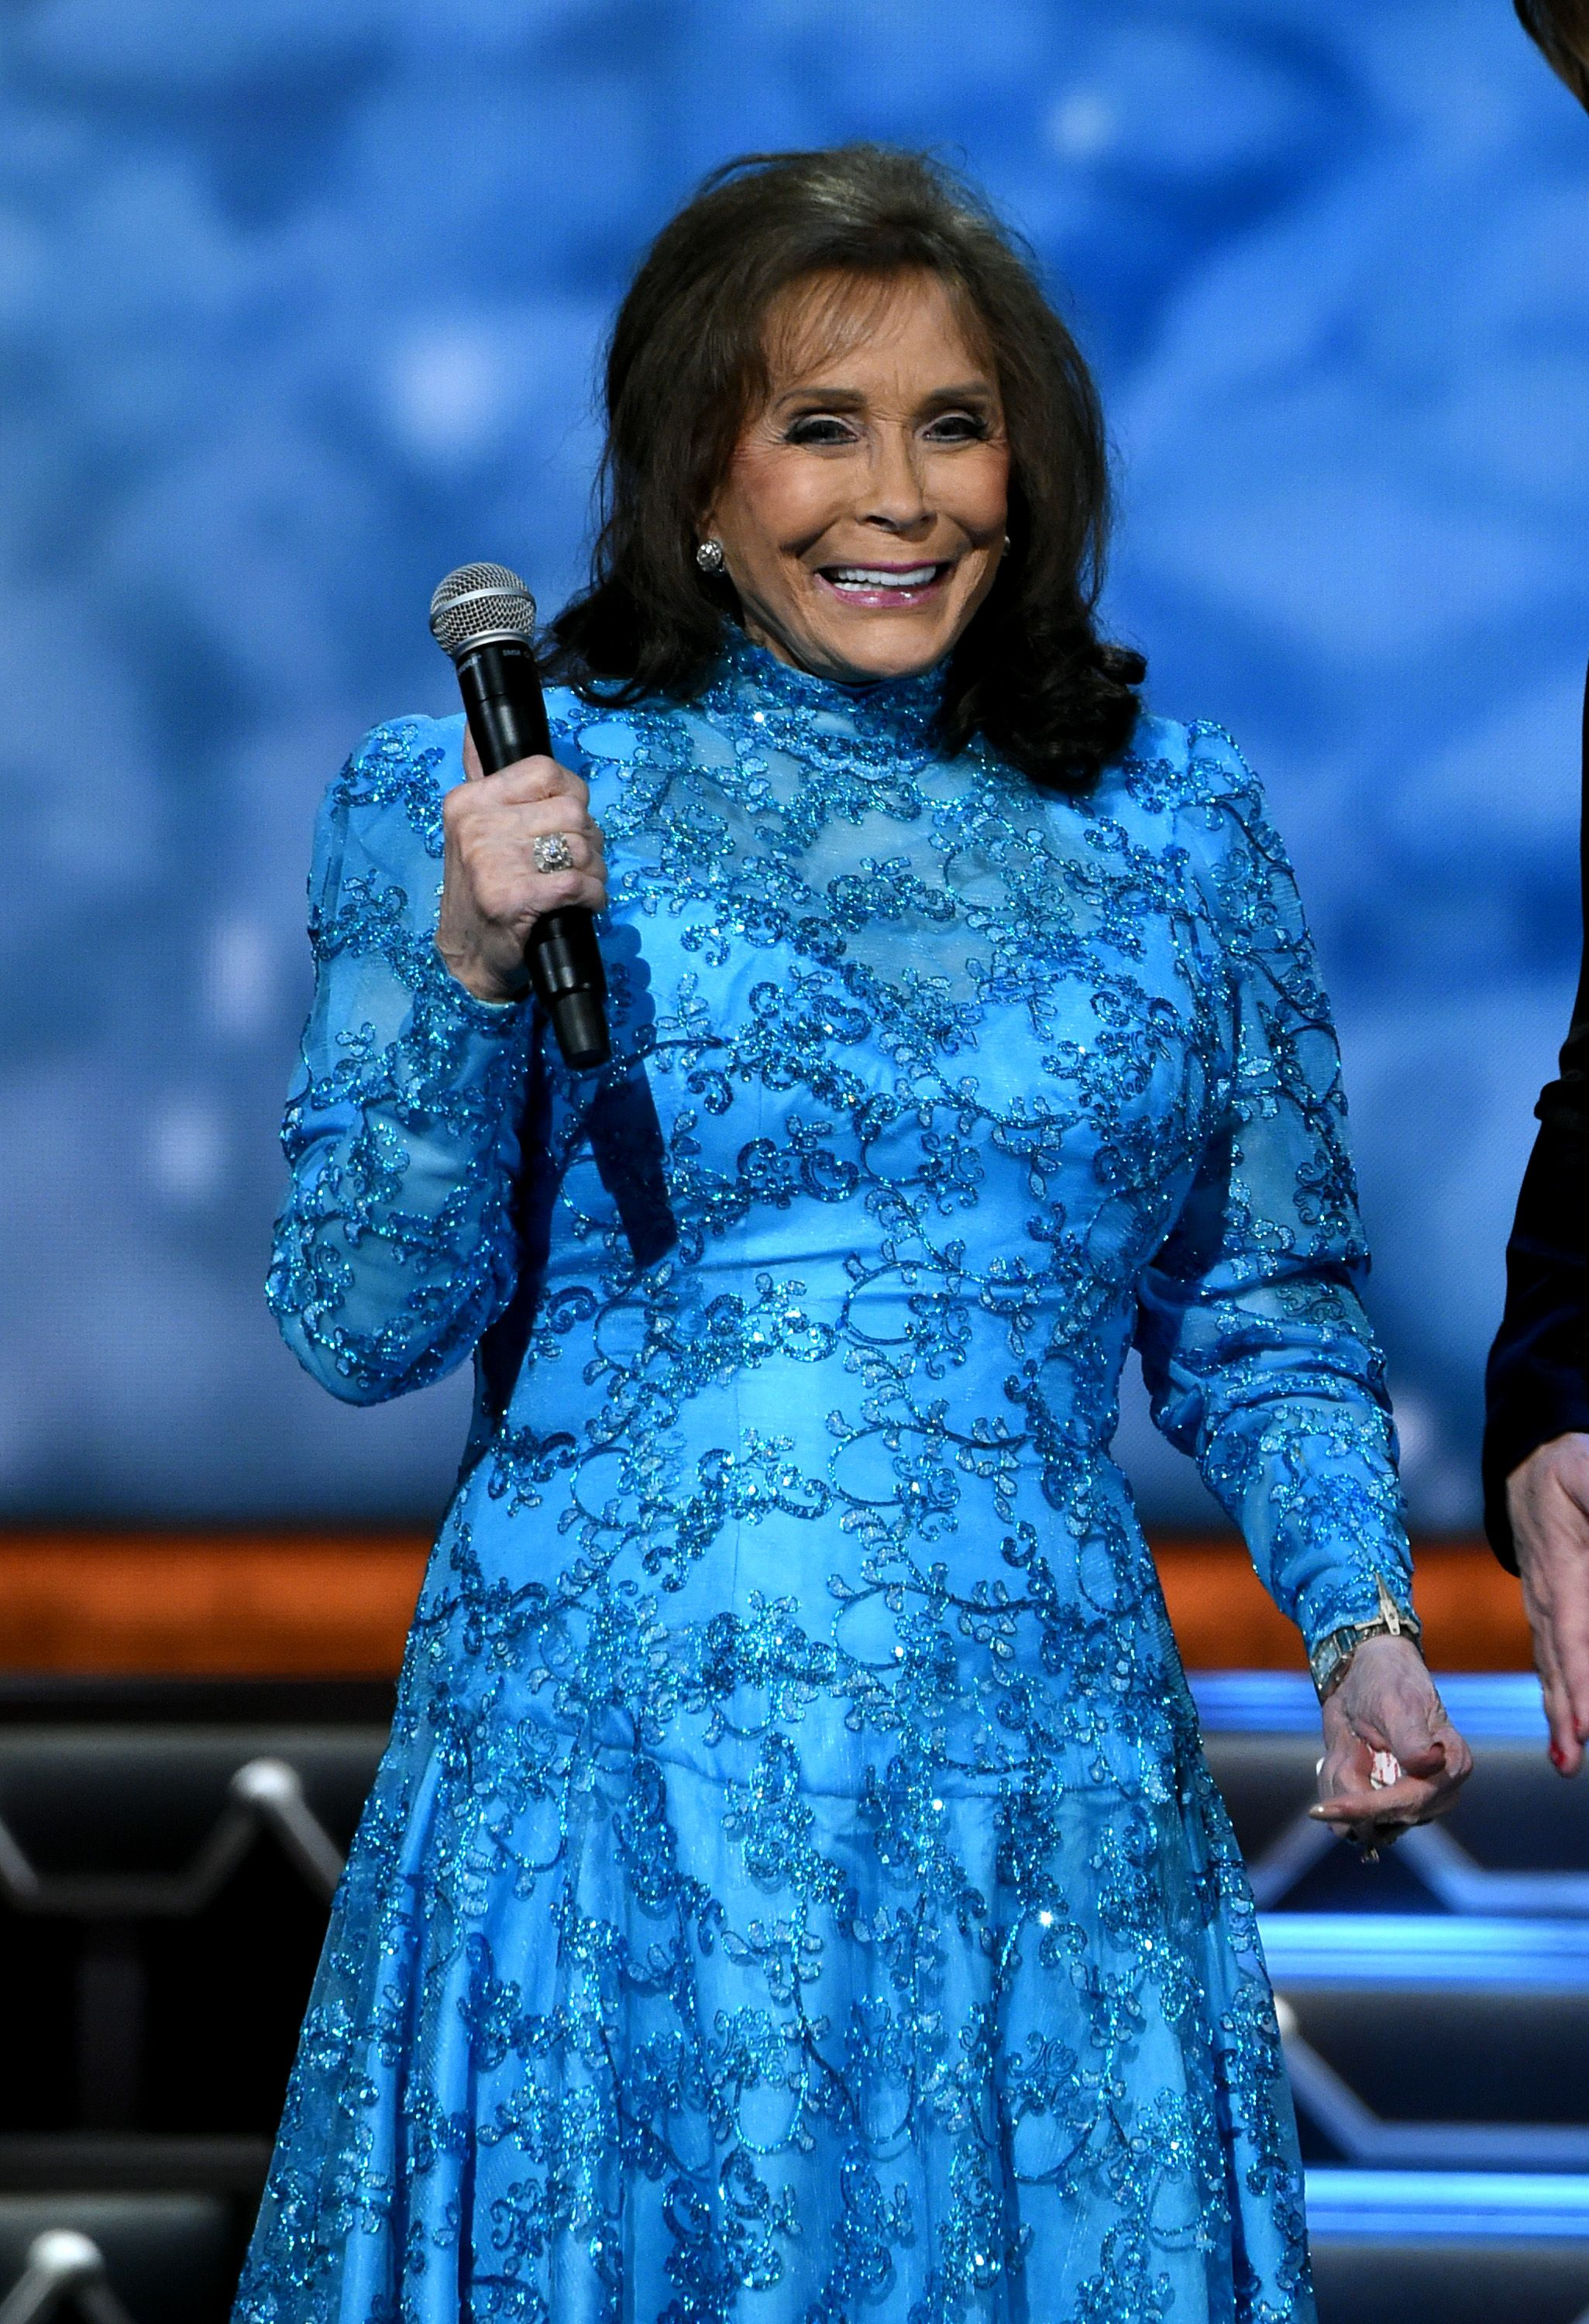 Singer-songwriter Loretta Lynn on stage during the CMA 2016 Country Christmas on November 8, 2016 in Nashville, Tennessee. | Photo: Getty Images